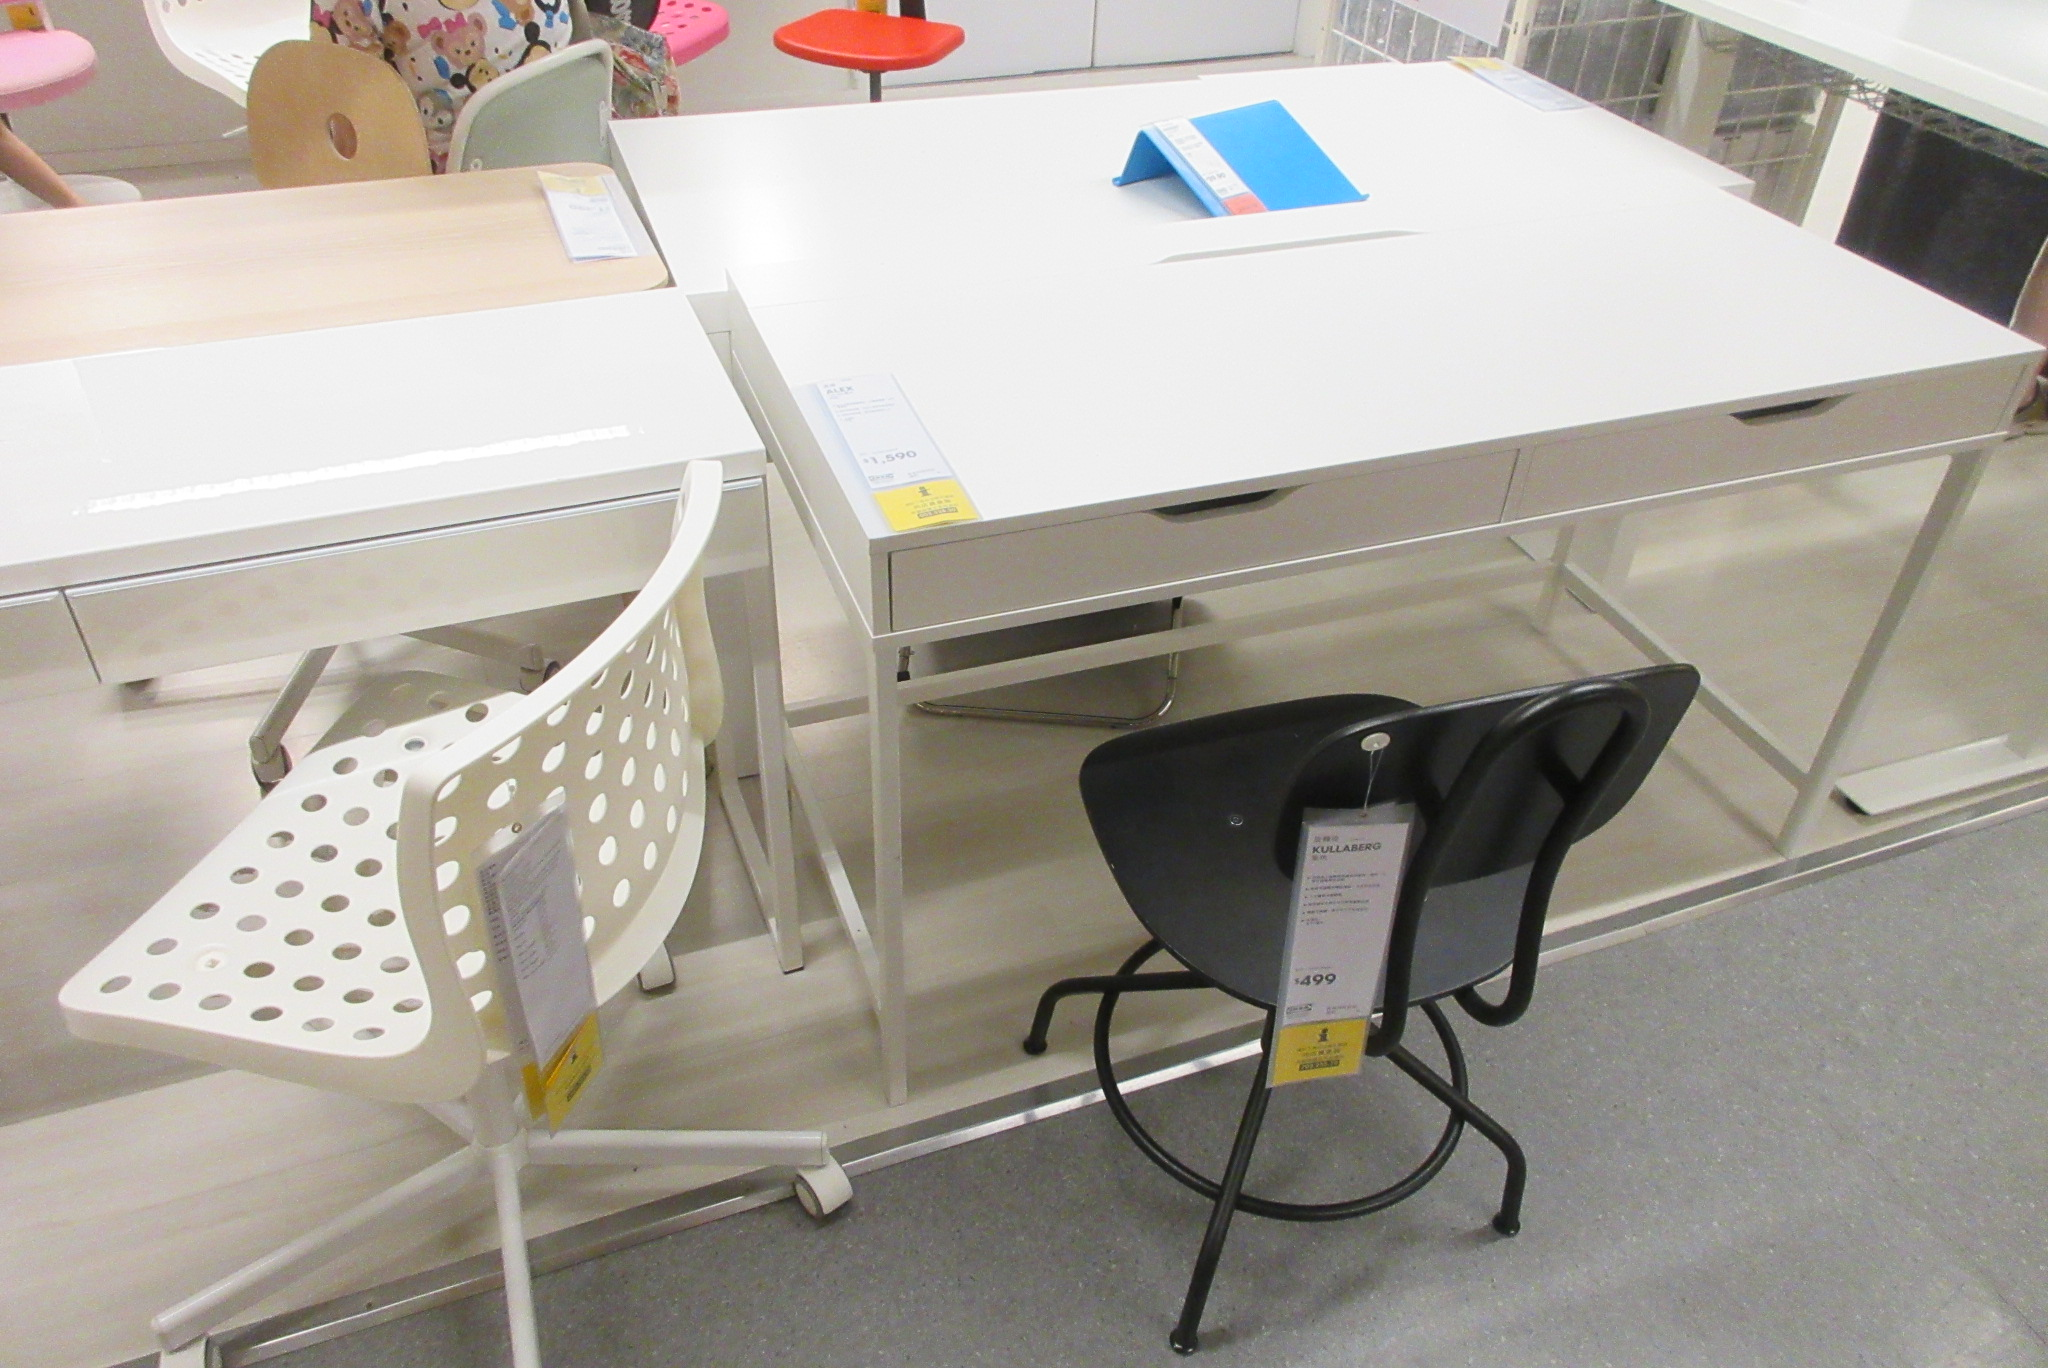 office furniture ikea. file:hk 銅鑼灣 cwb 宜家家居 ikea shop office furniture table n chairs july 2017 ikea